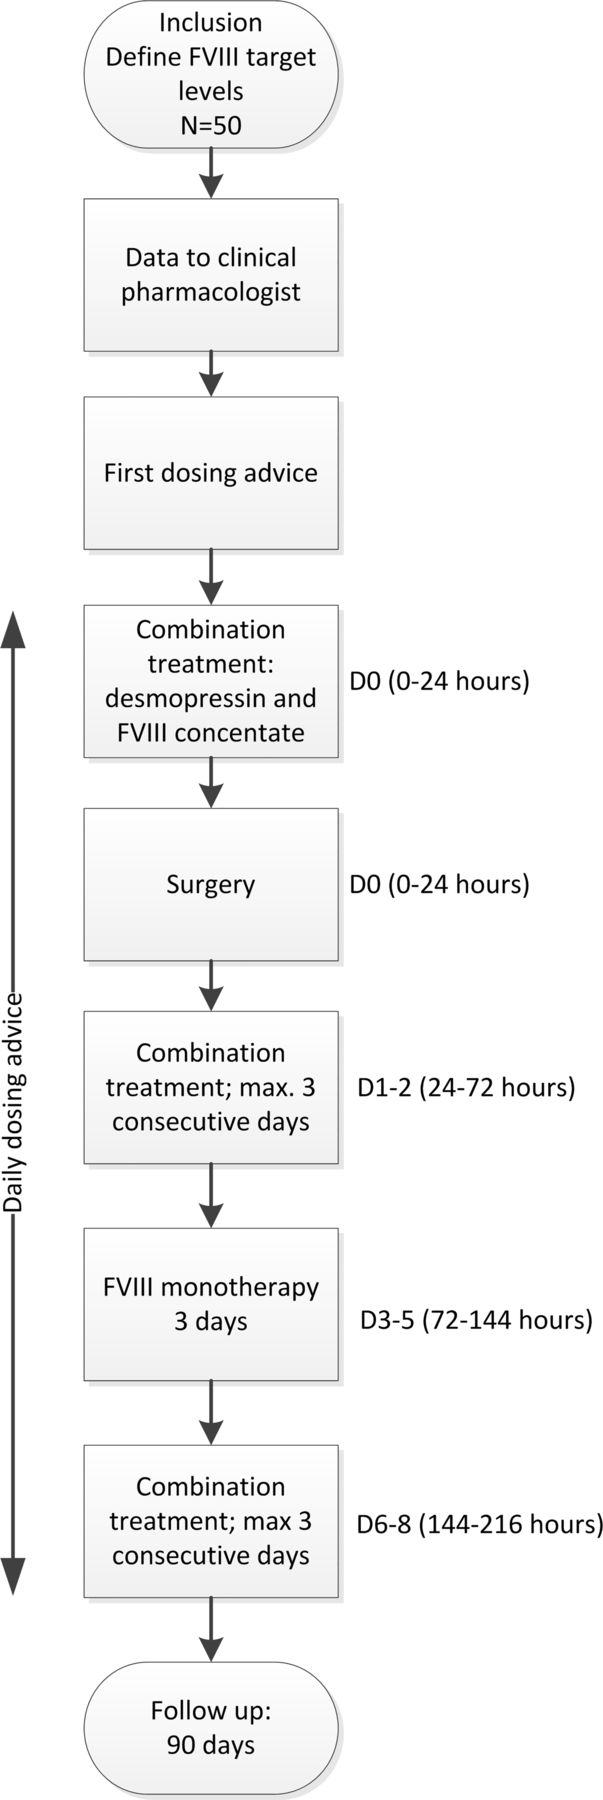 Desmopressin treatment combined with clotting factor VIII